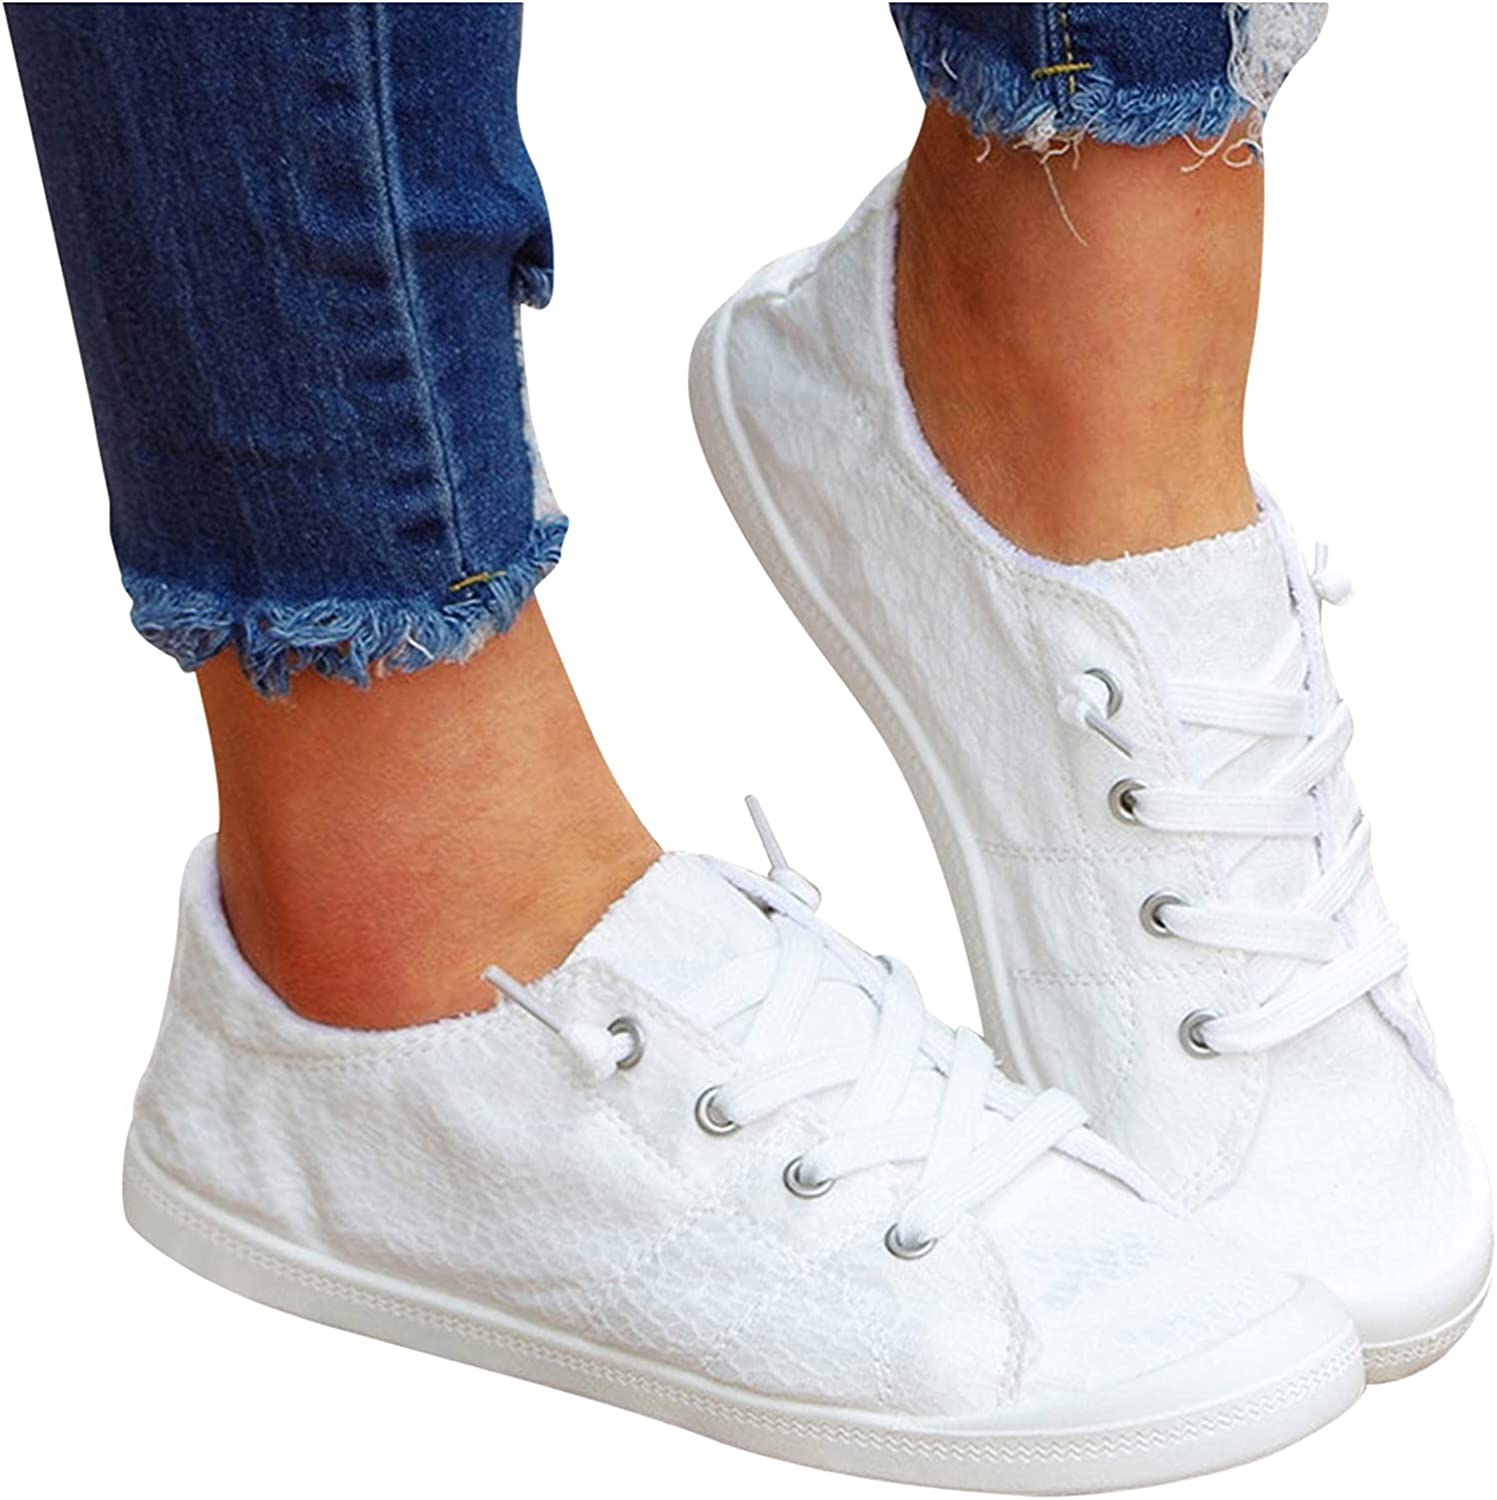 siilsaa Sneakers for Women, Womens Solid Lace Up Flat Running Sh